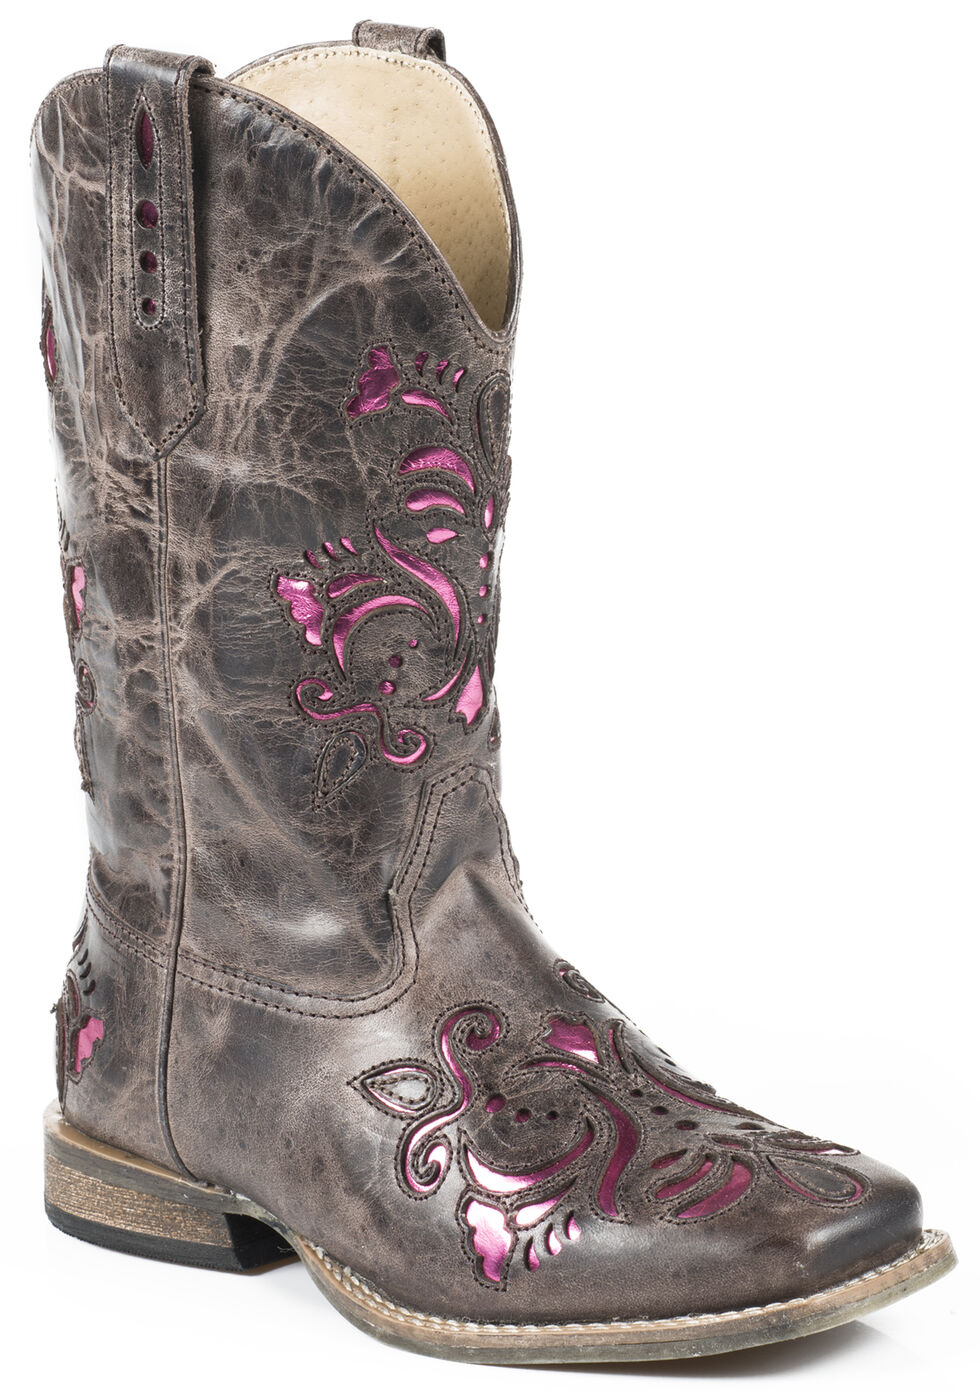 Roper Girls' Pink Belle Underlay Cowgirl Boots, Brown, hi-res